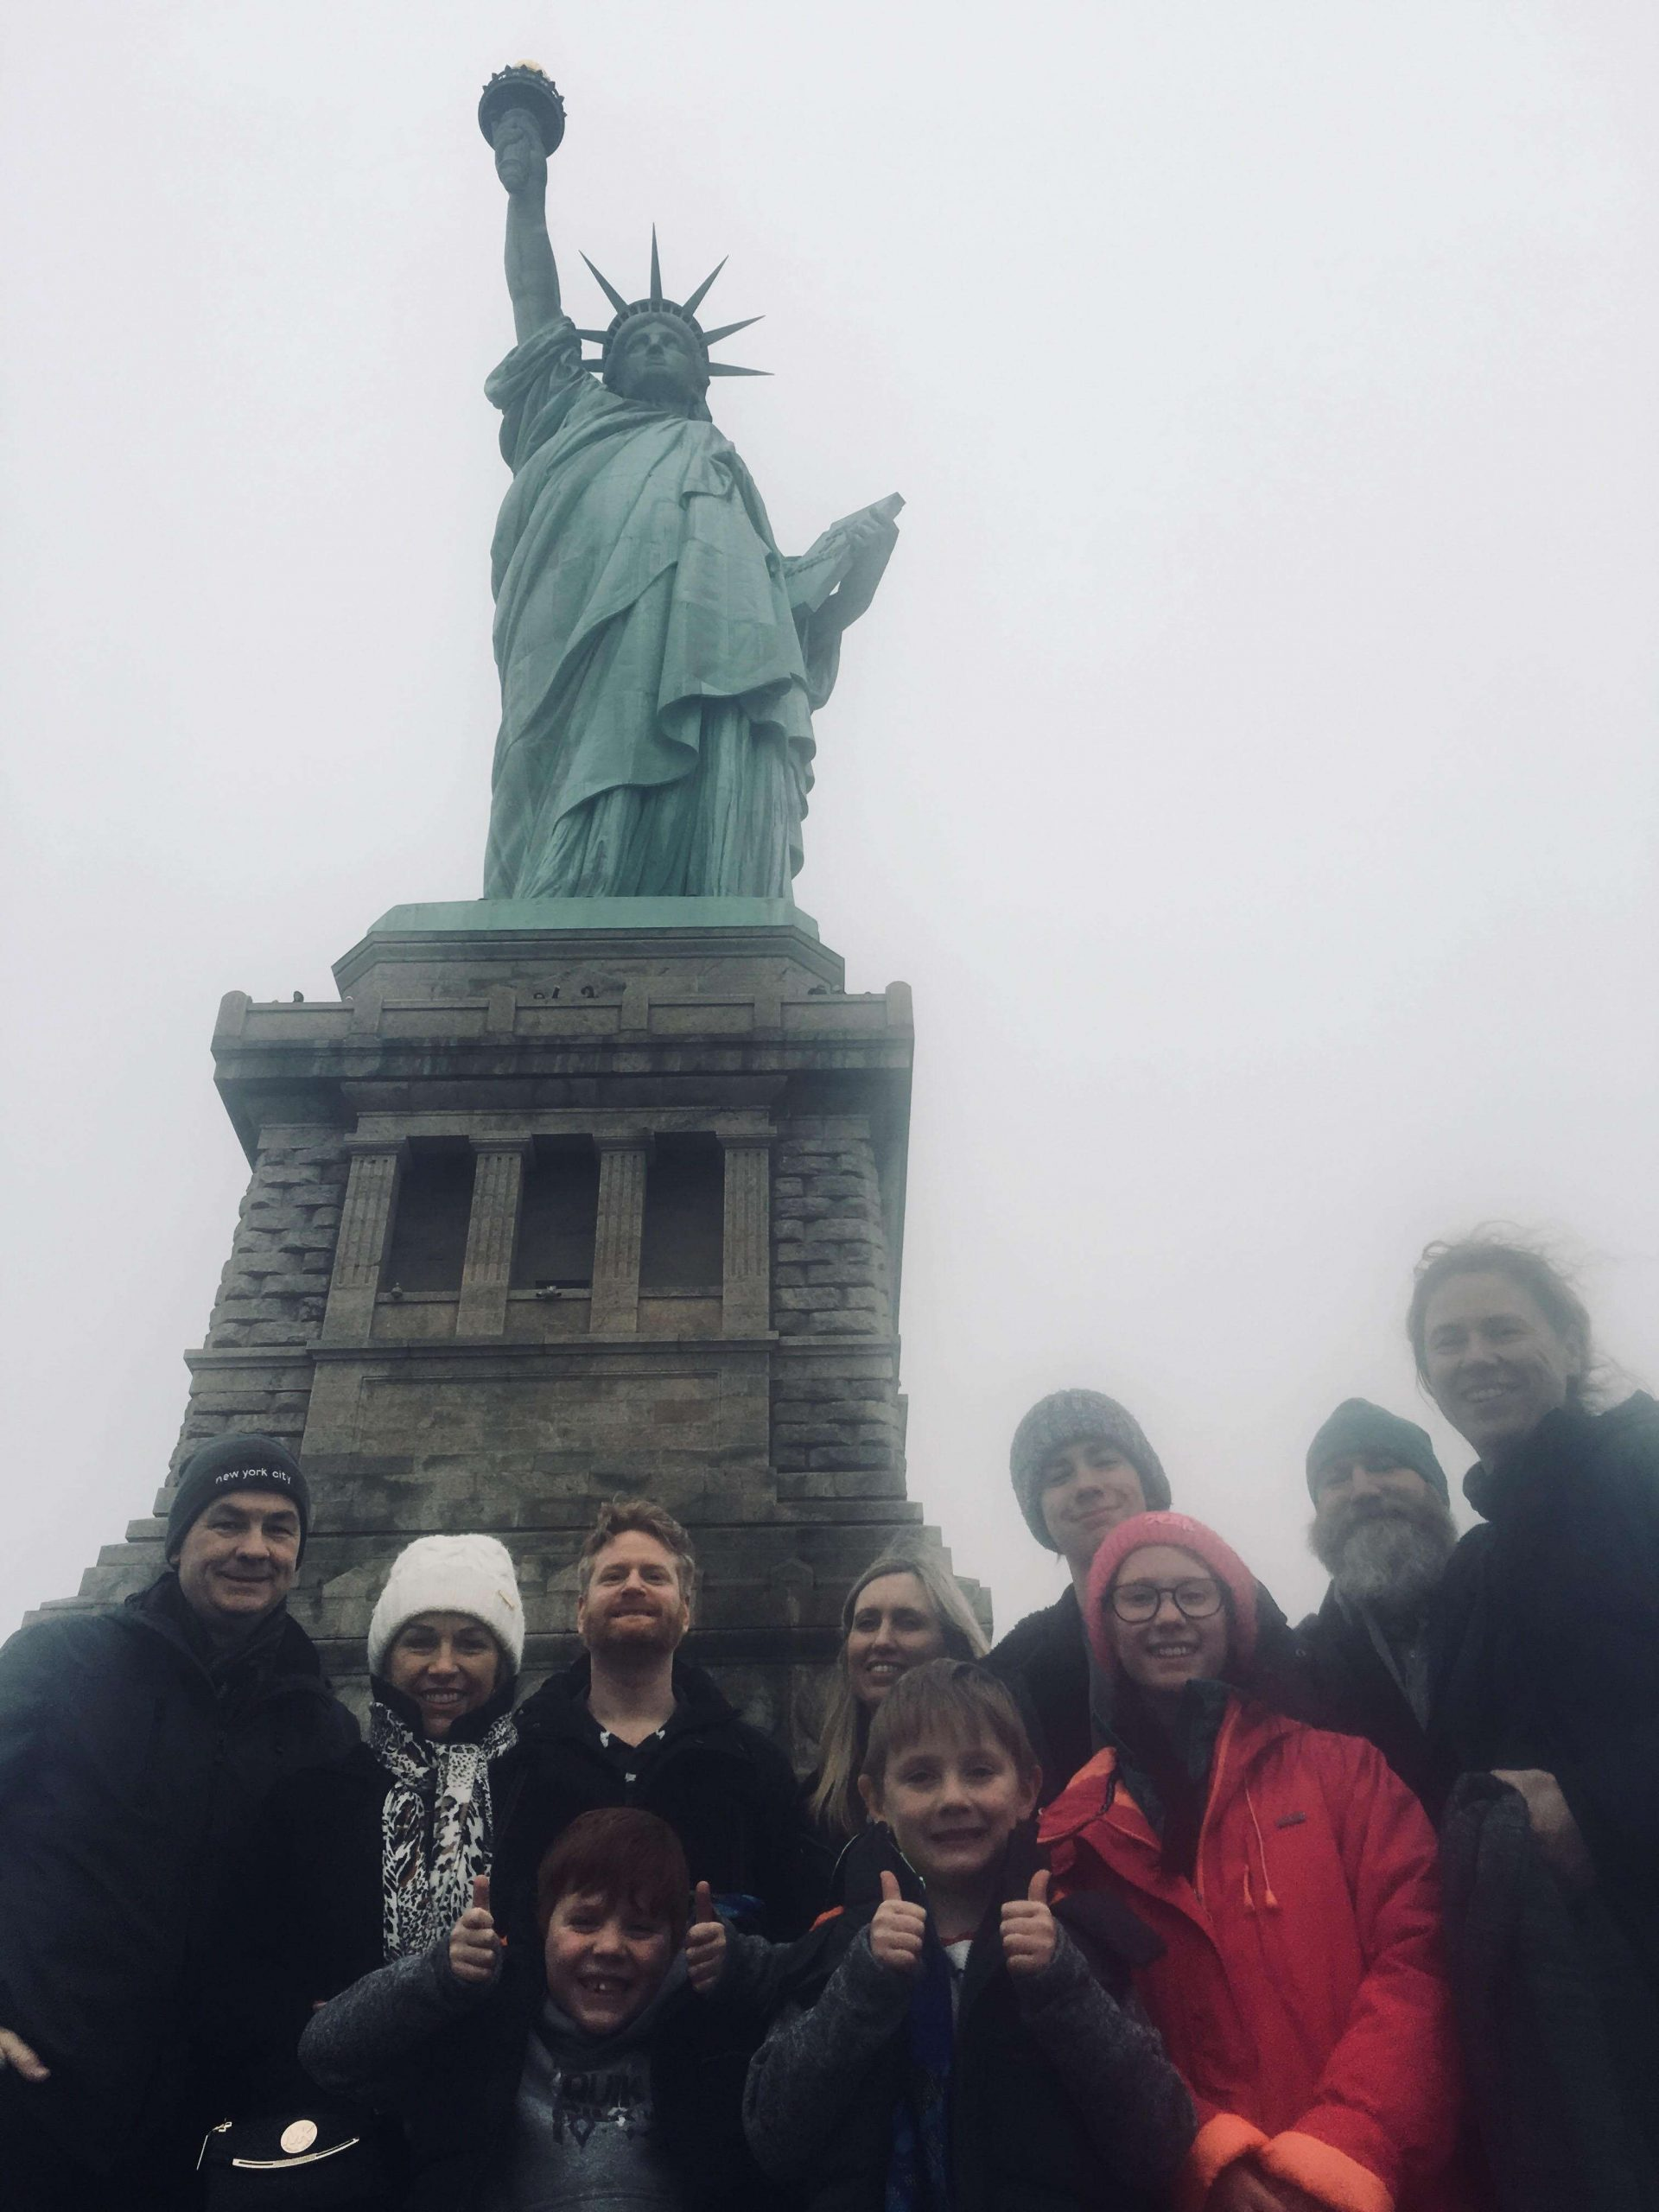 Group photo in front of the statue of liberty